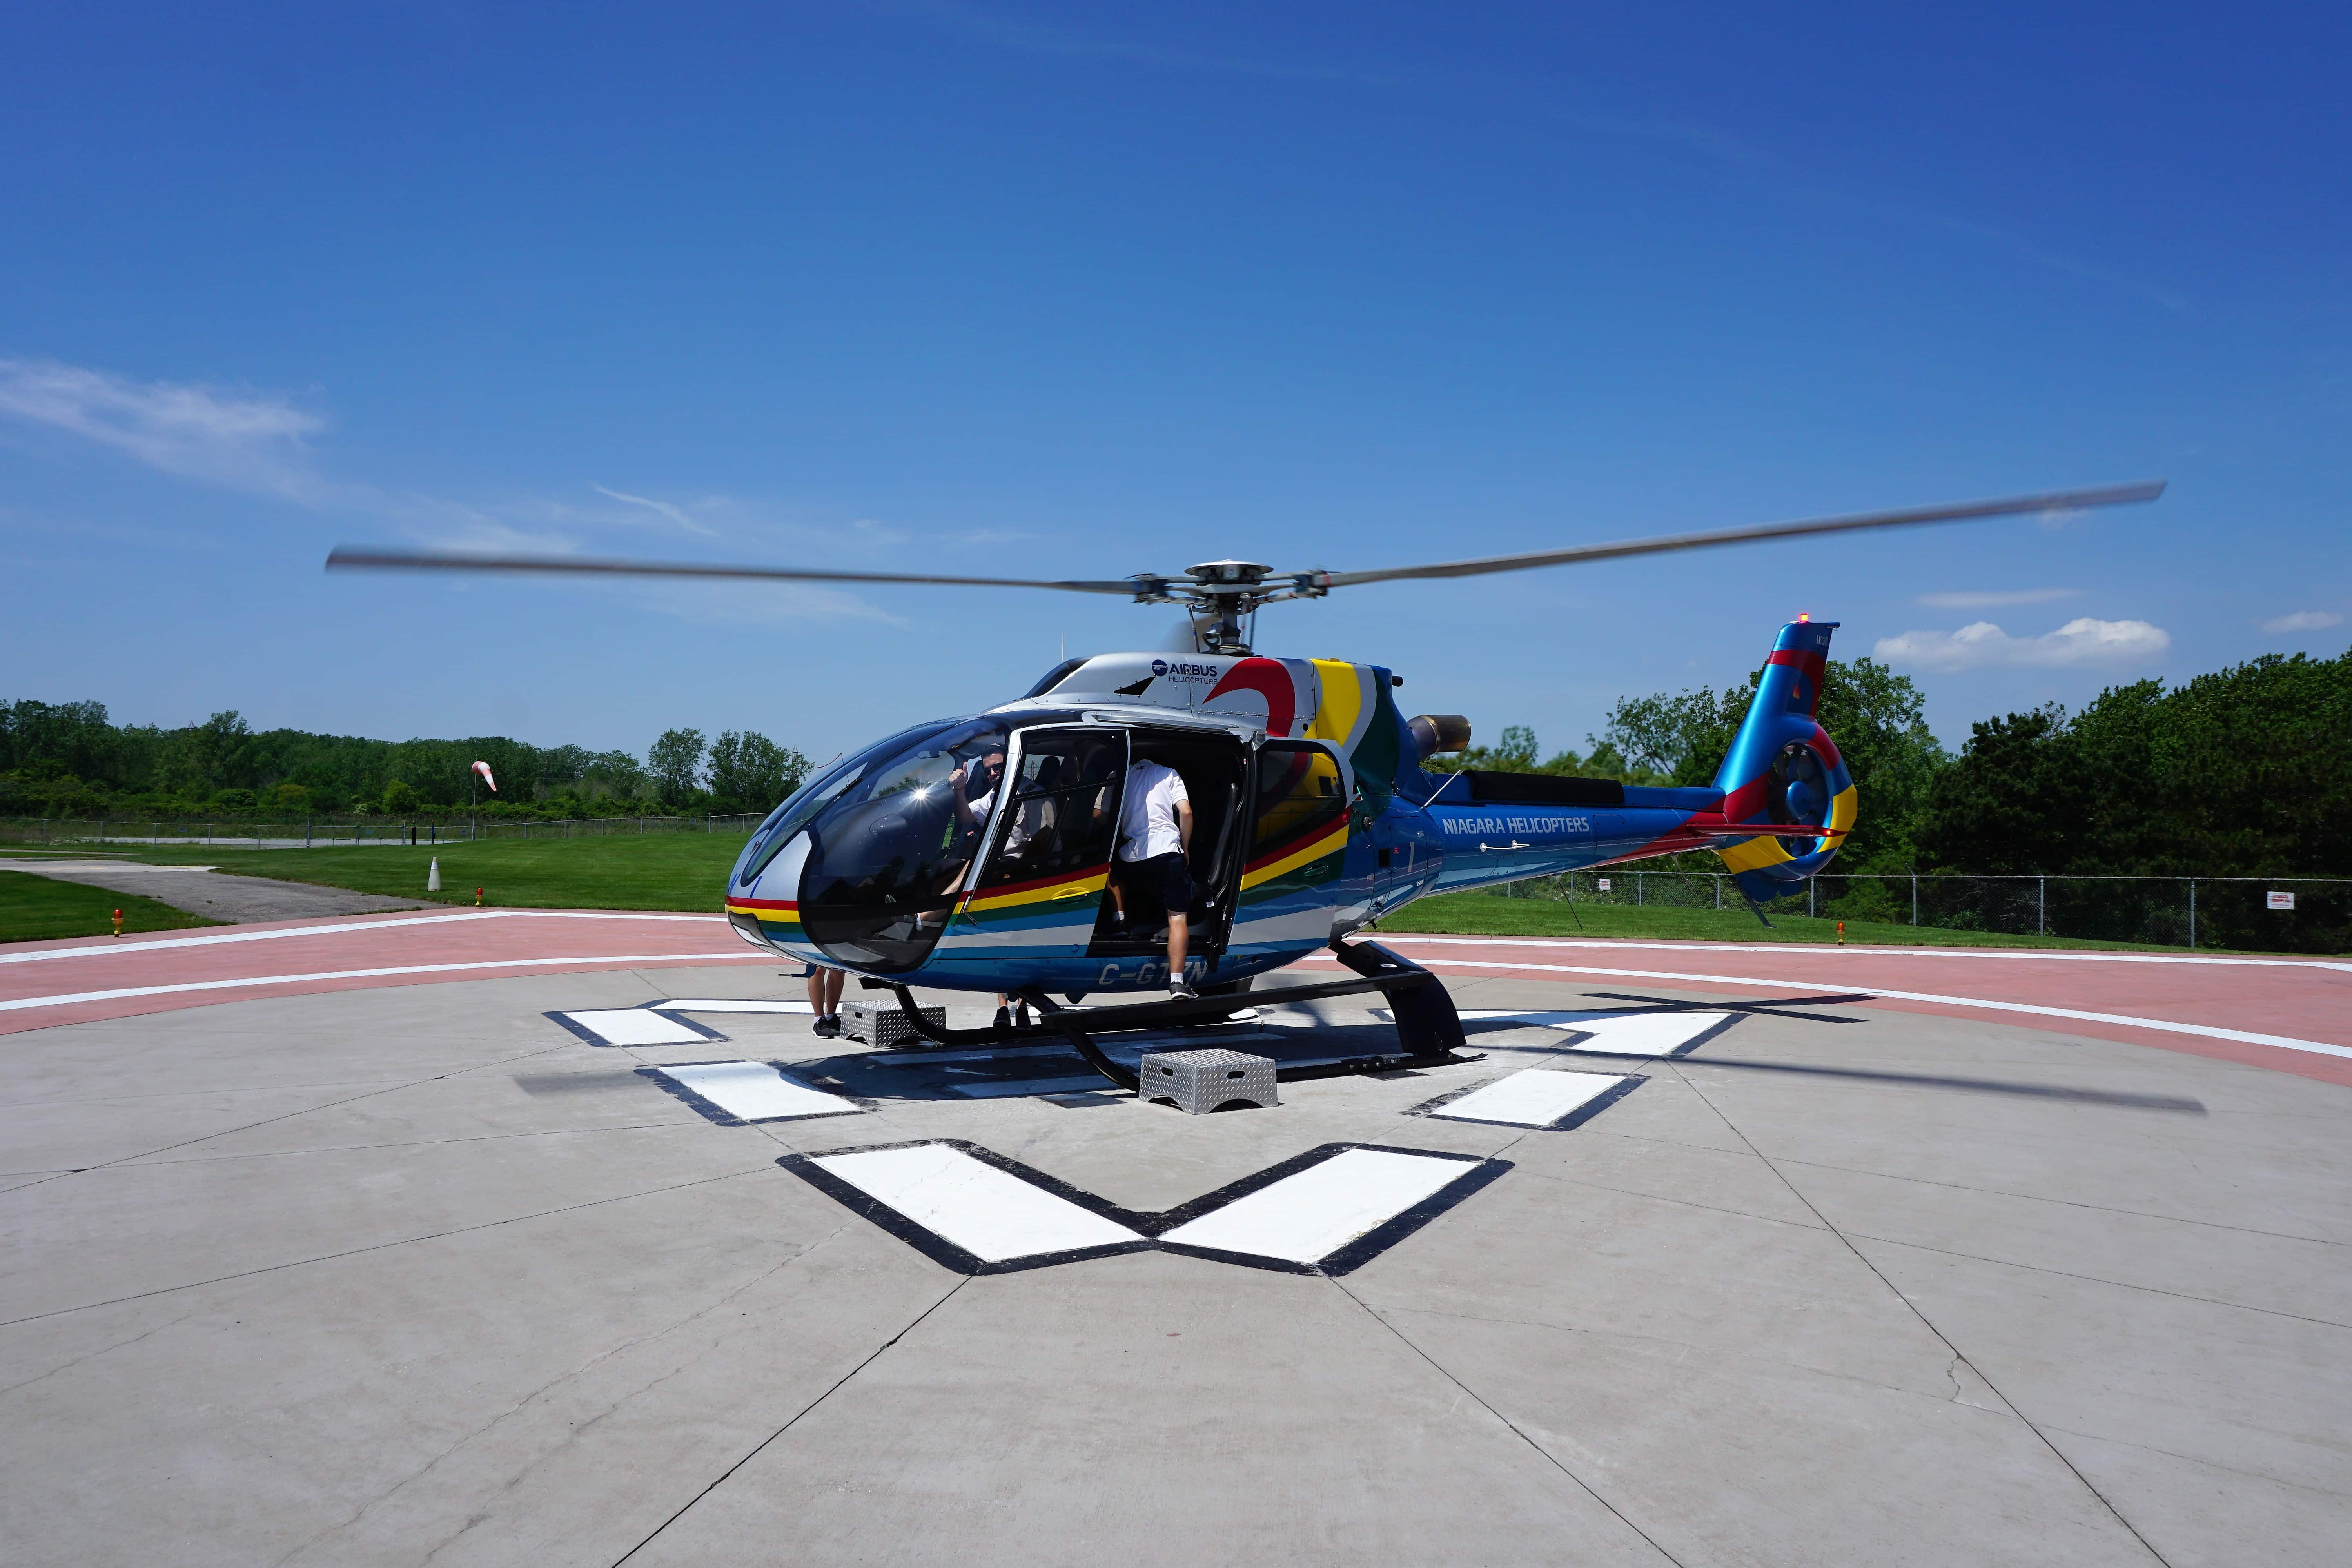 Our helicopter ready get ready for another flight. -